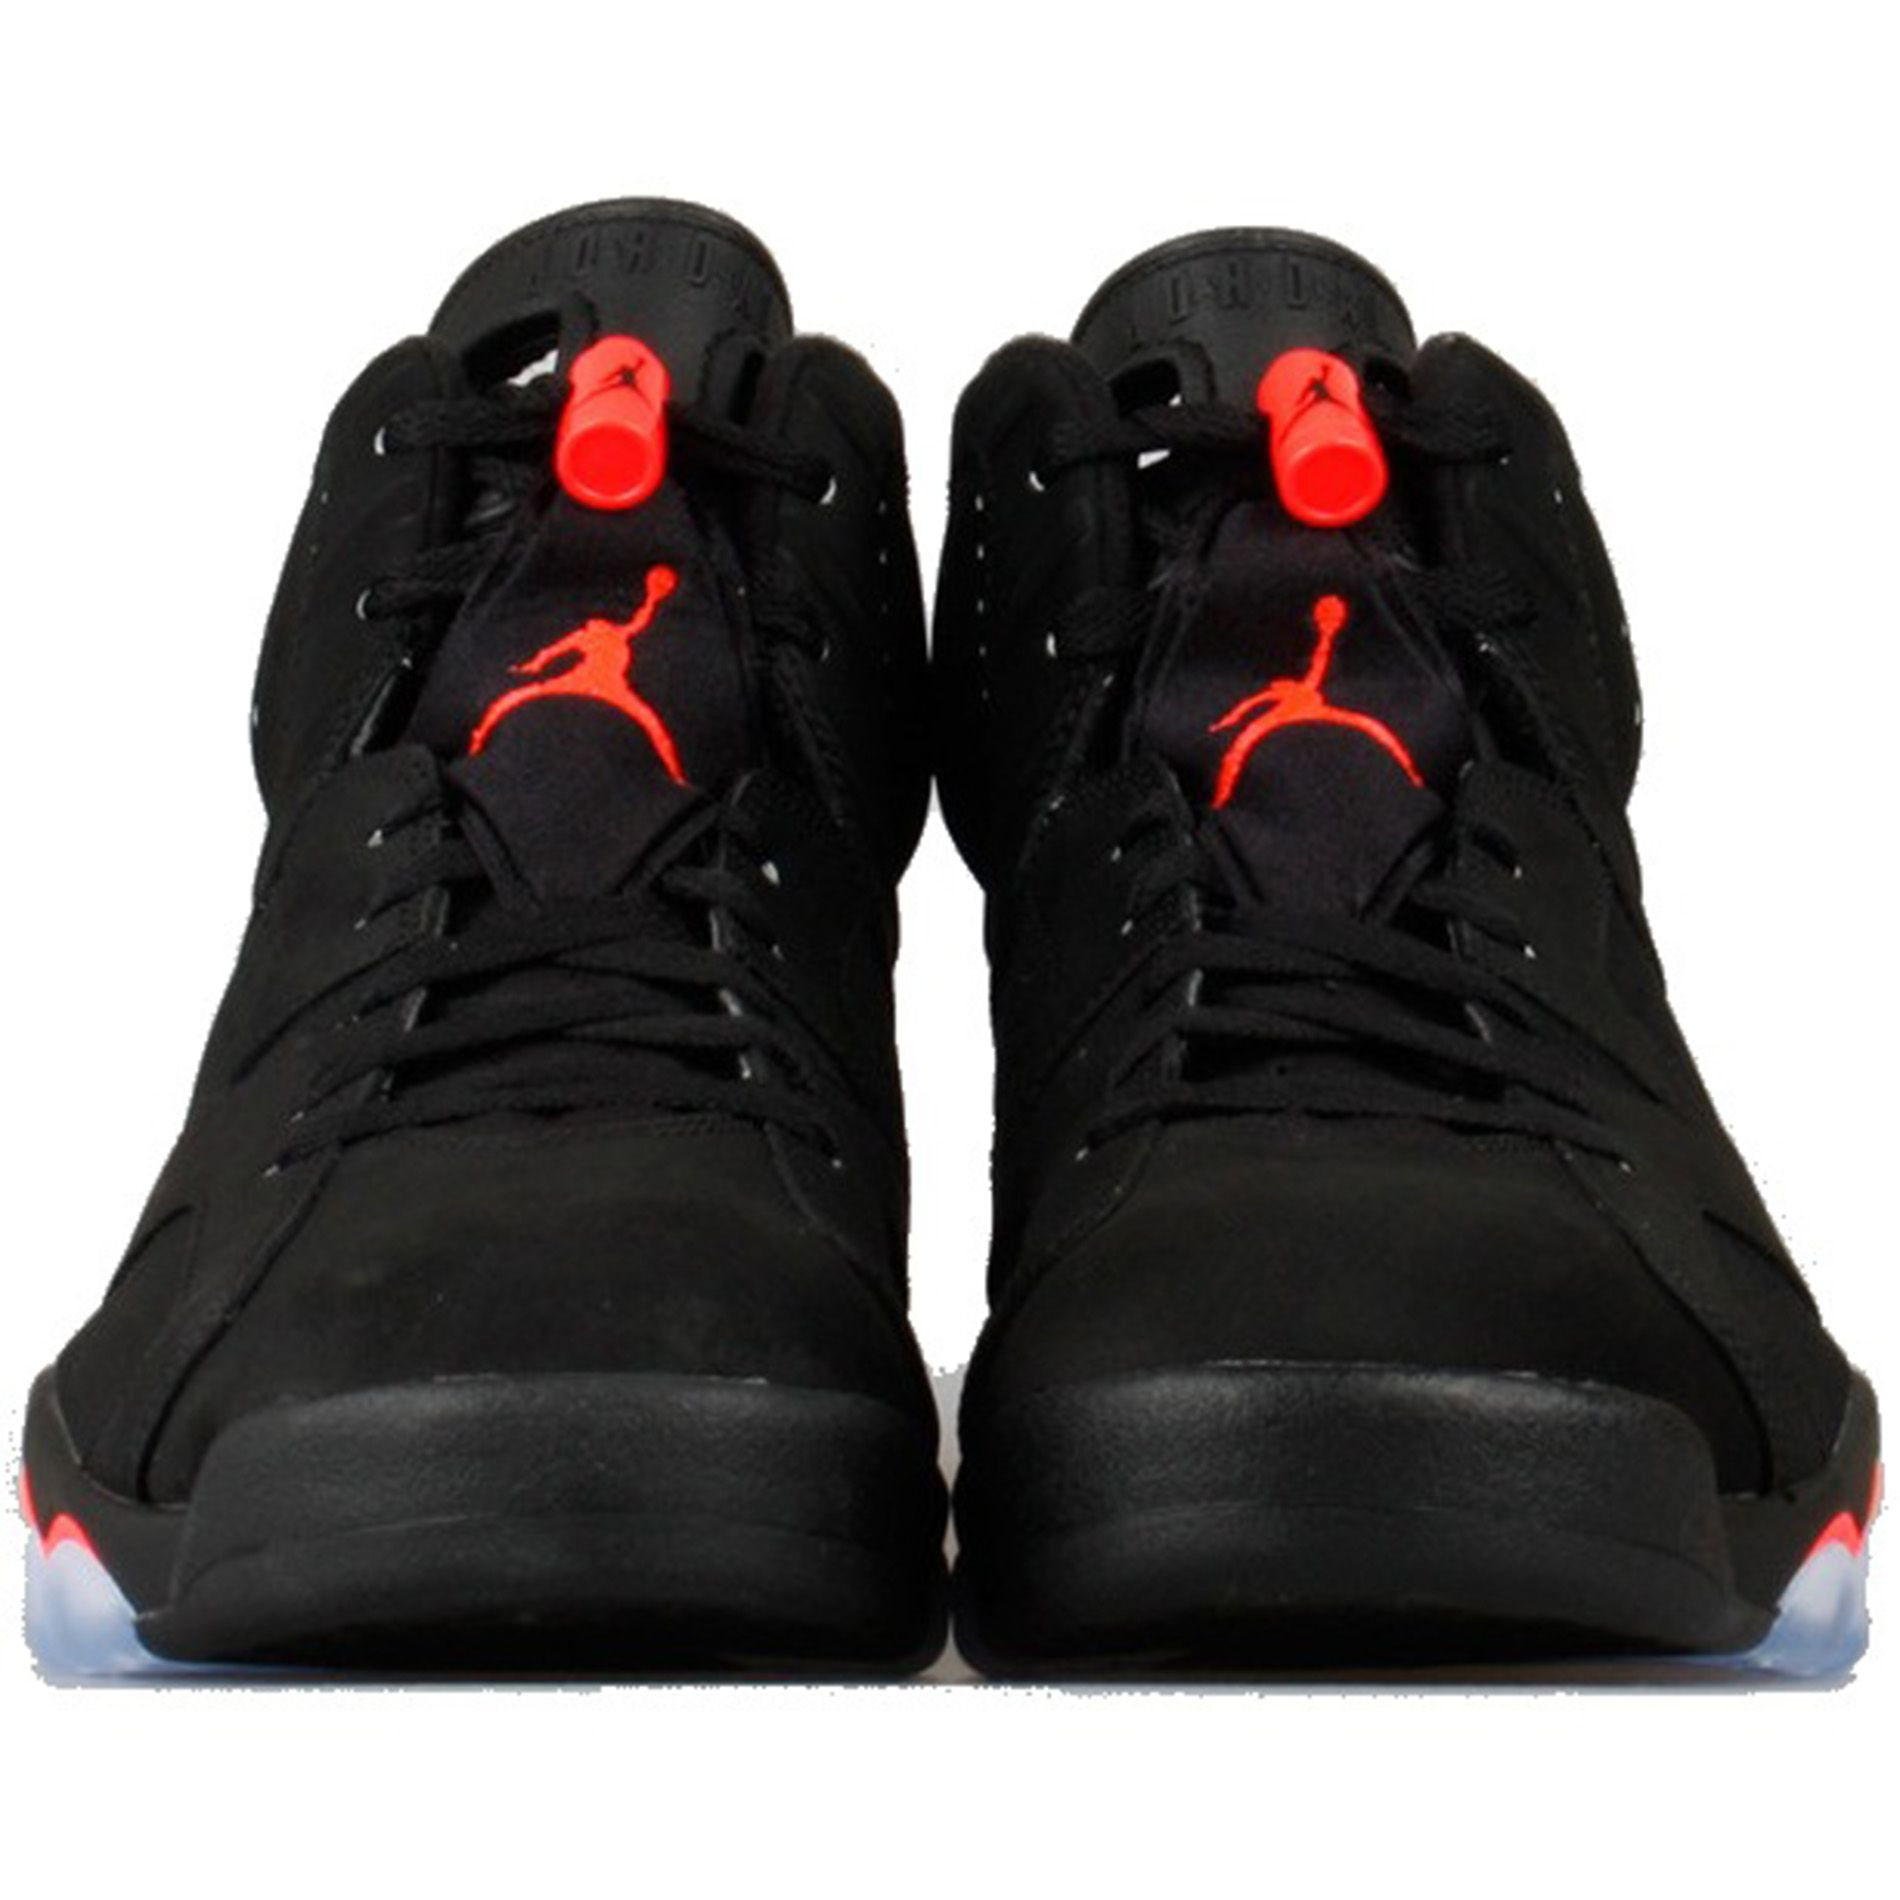 new style d9169 c8803 ... coupon code for nike air jordan 6 retro black infrared 384664 023 c134c  0b843